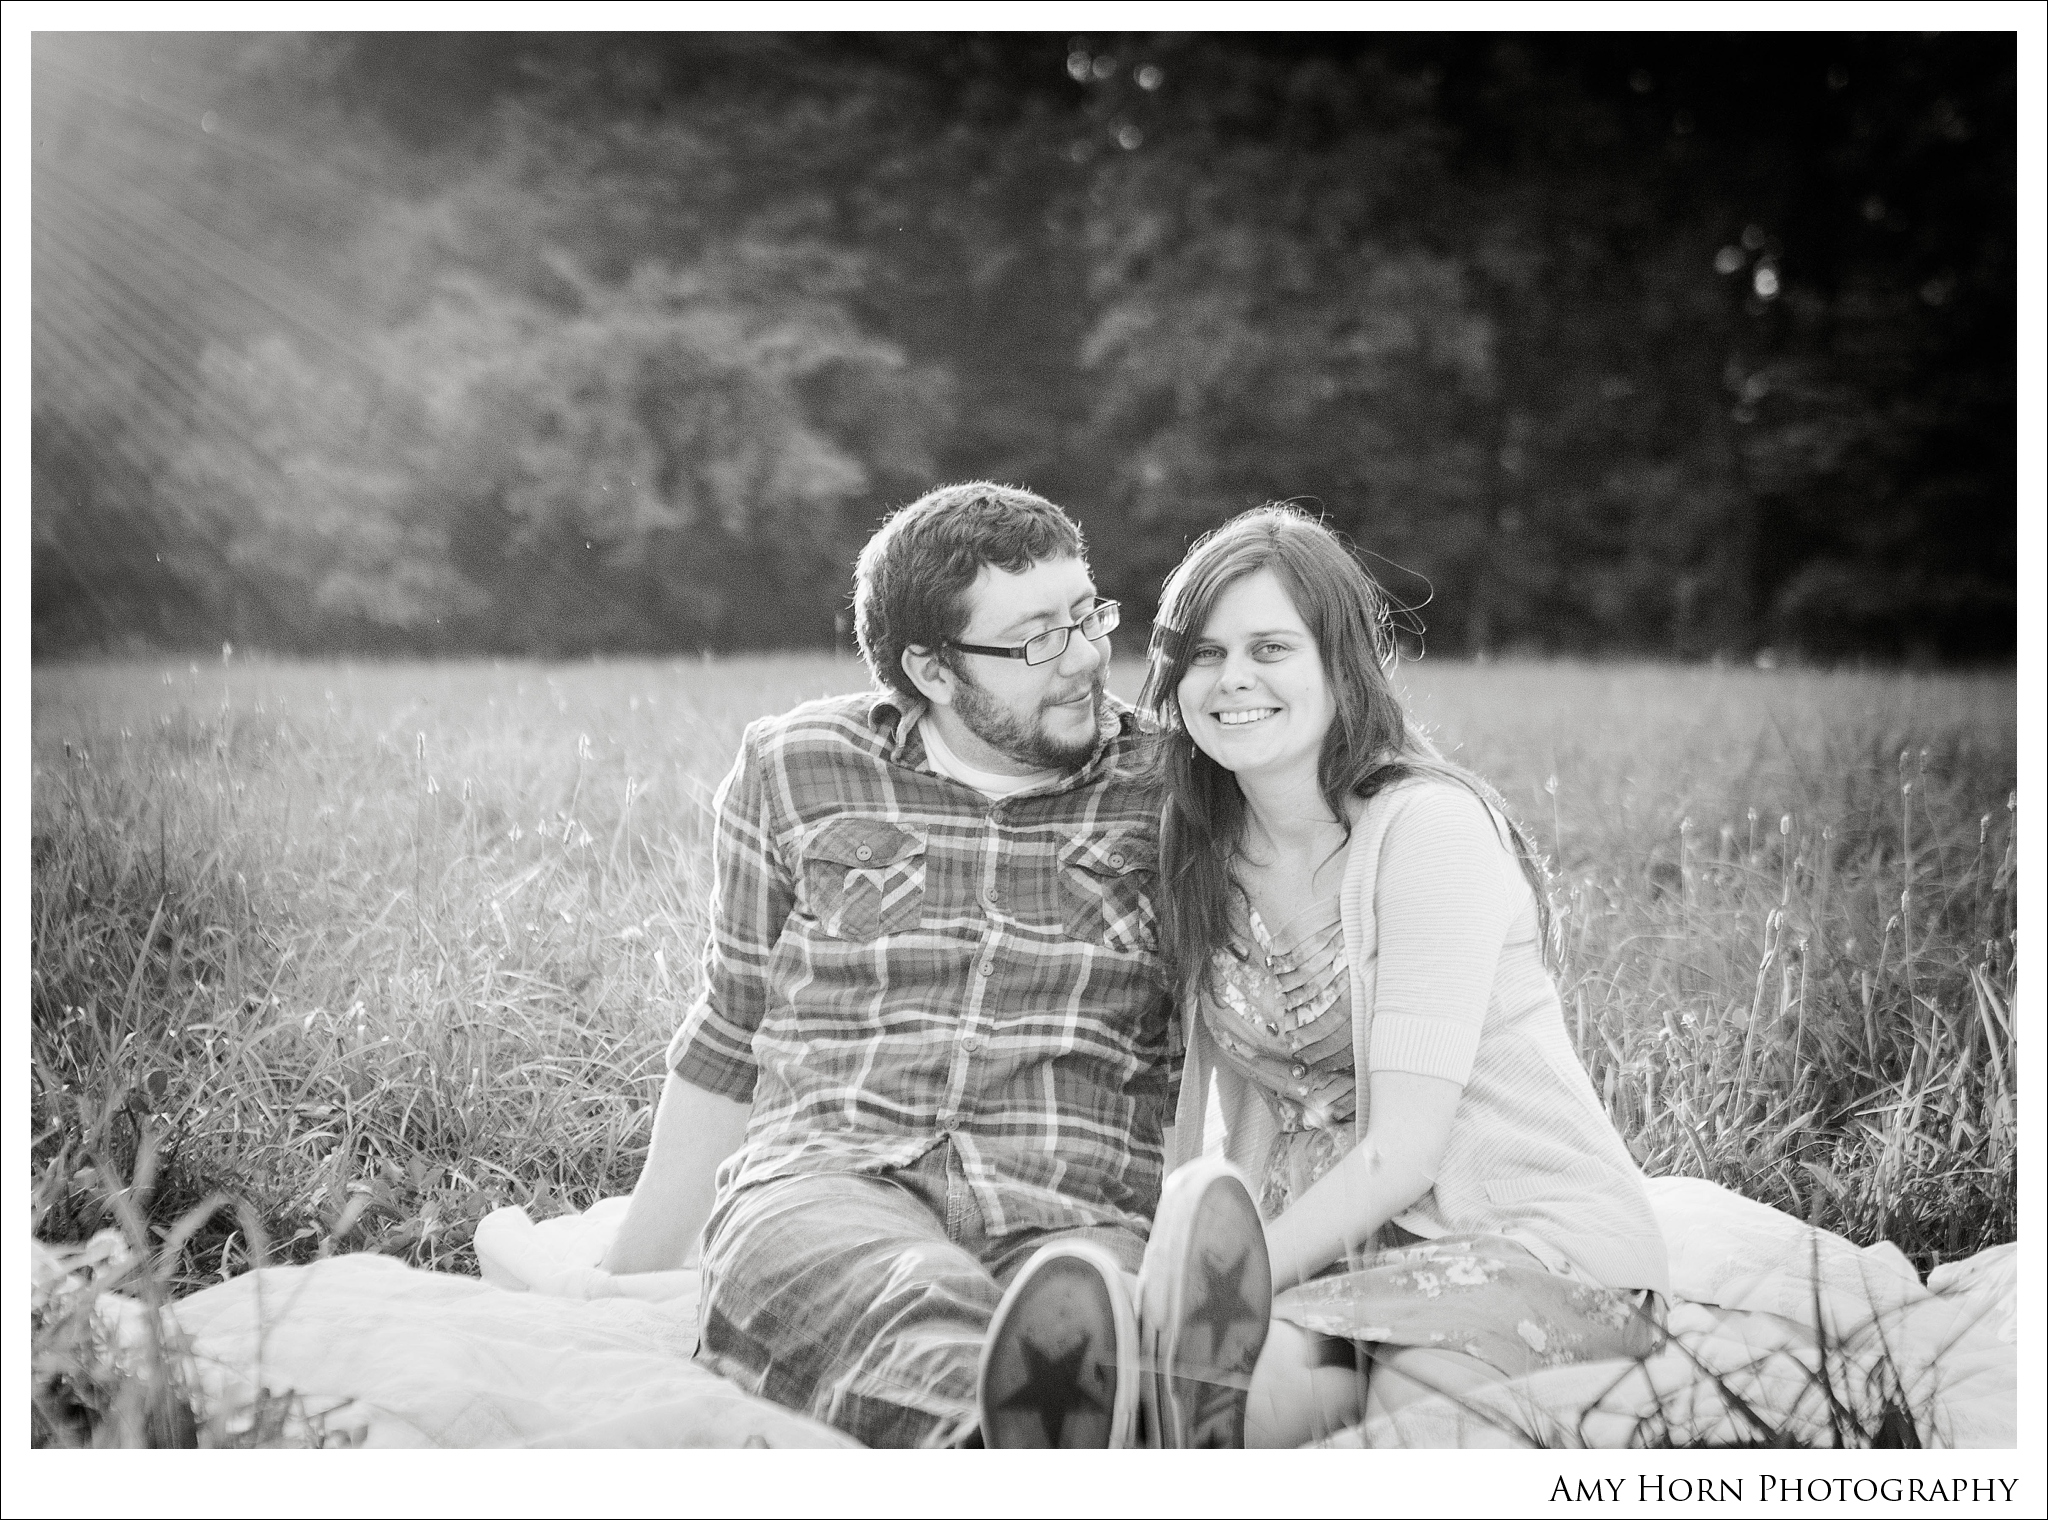 madison indiana wedding photographer, lawrenceburg indiana wedding, amy horn, engagement photography, field photography, country engagement session, wedding and engagement session ideas, engagement session011.jpg